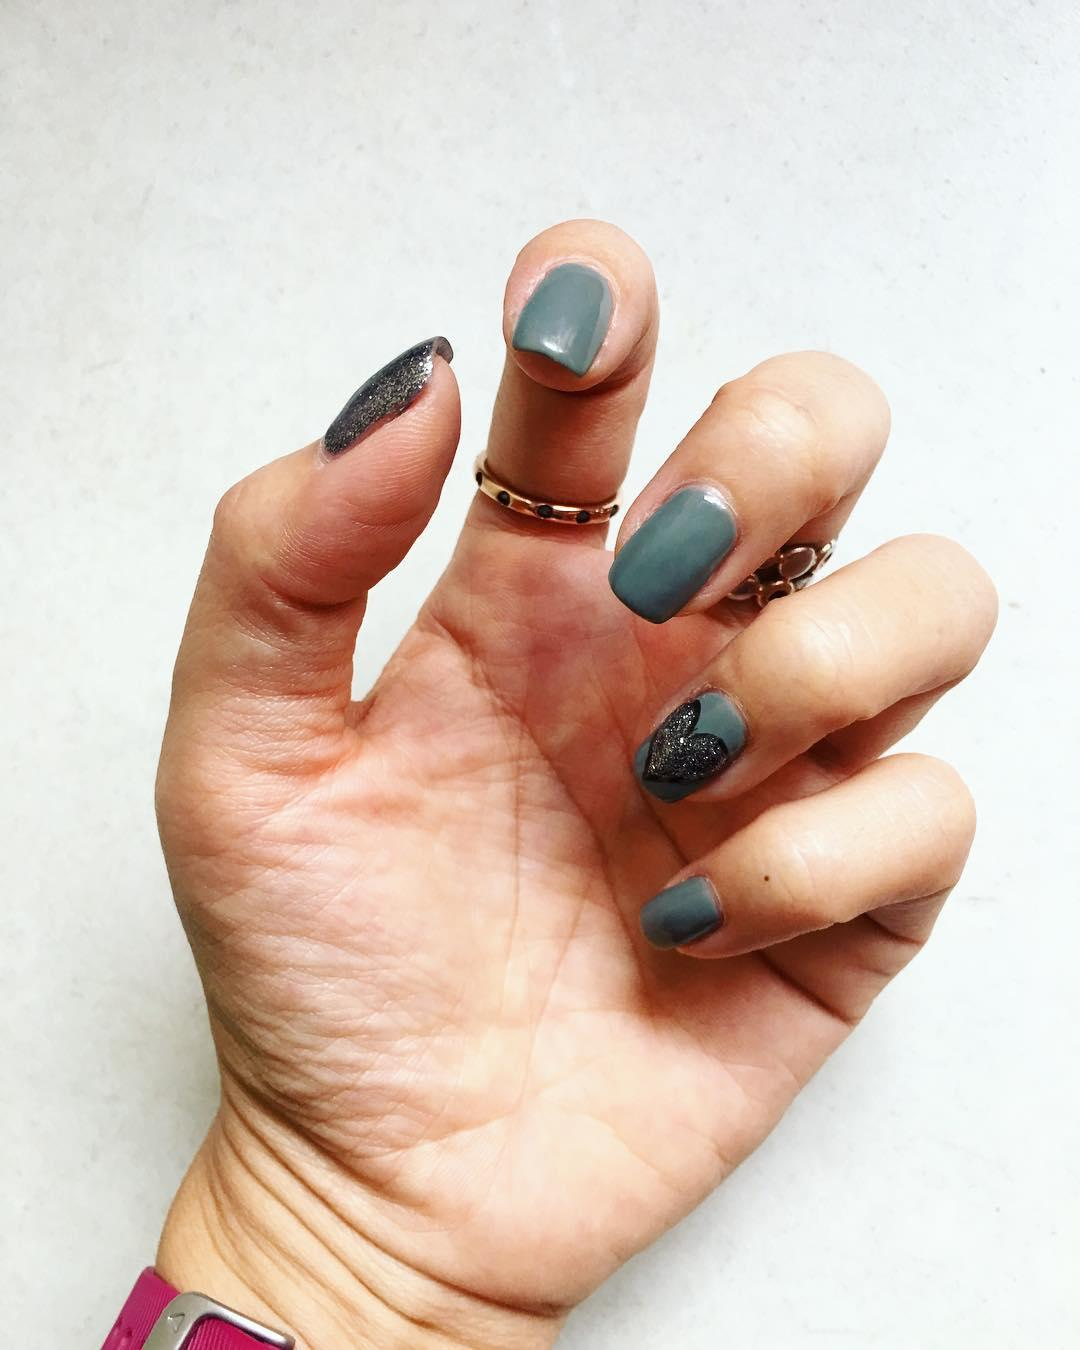 green nail art ideas and designs for 2019 9 - 17 Green Nail Art Ideas and Designs for 2019